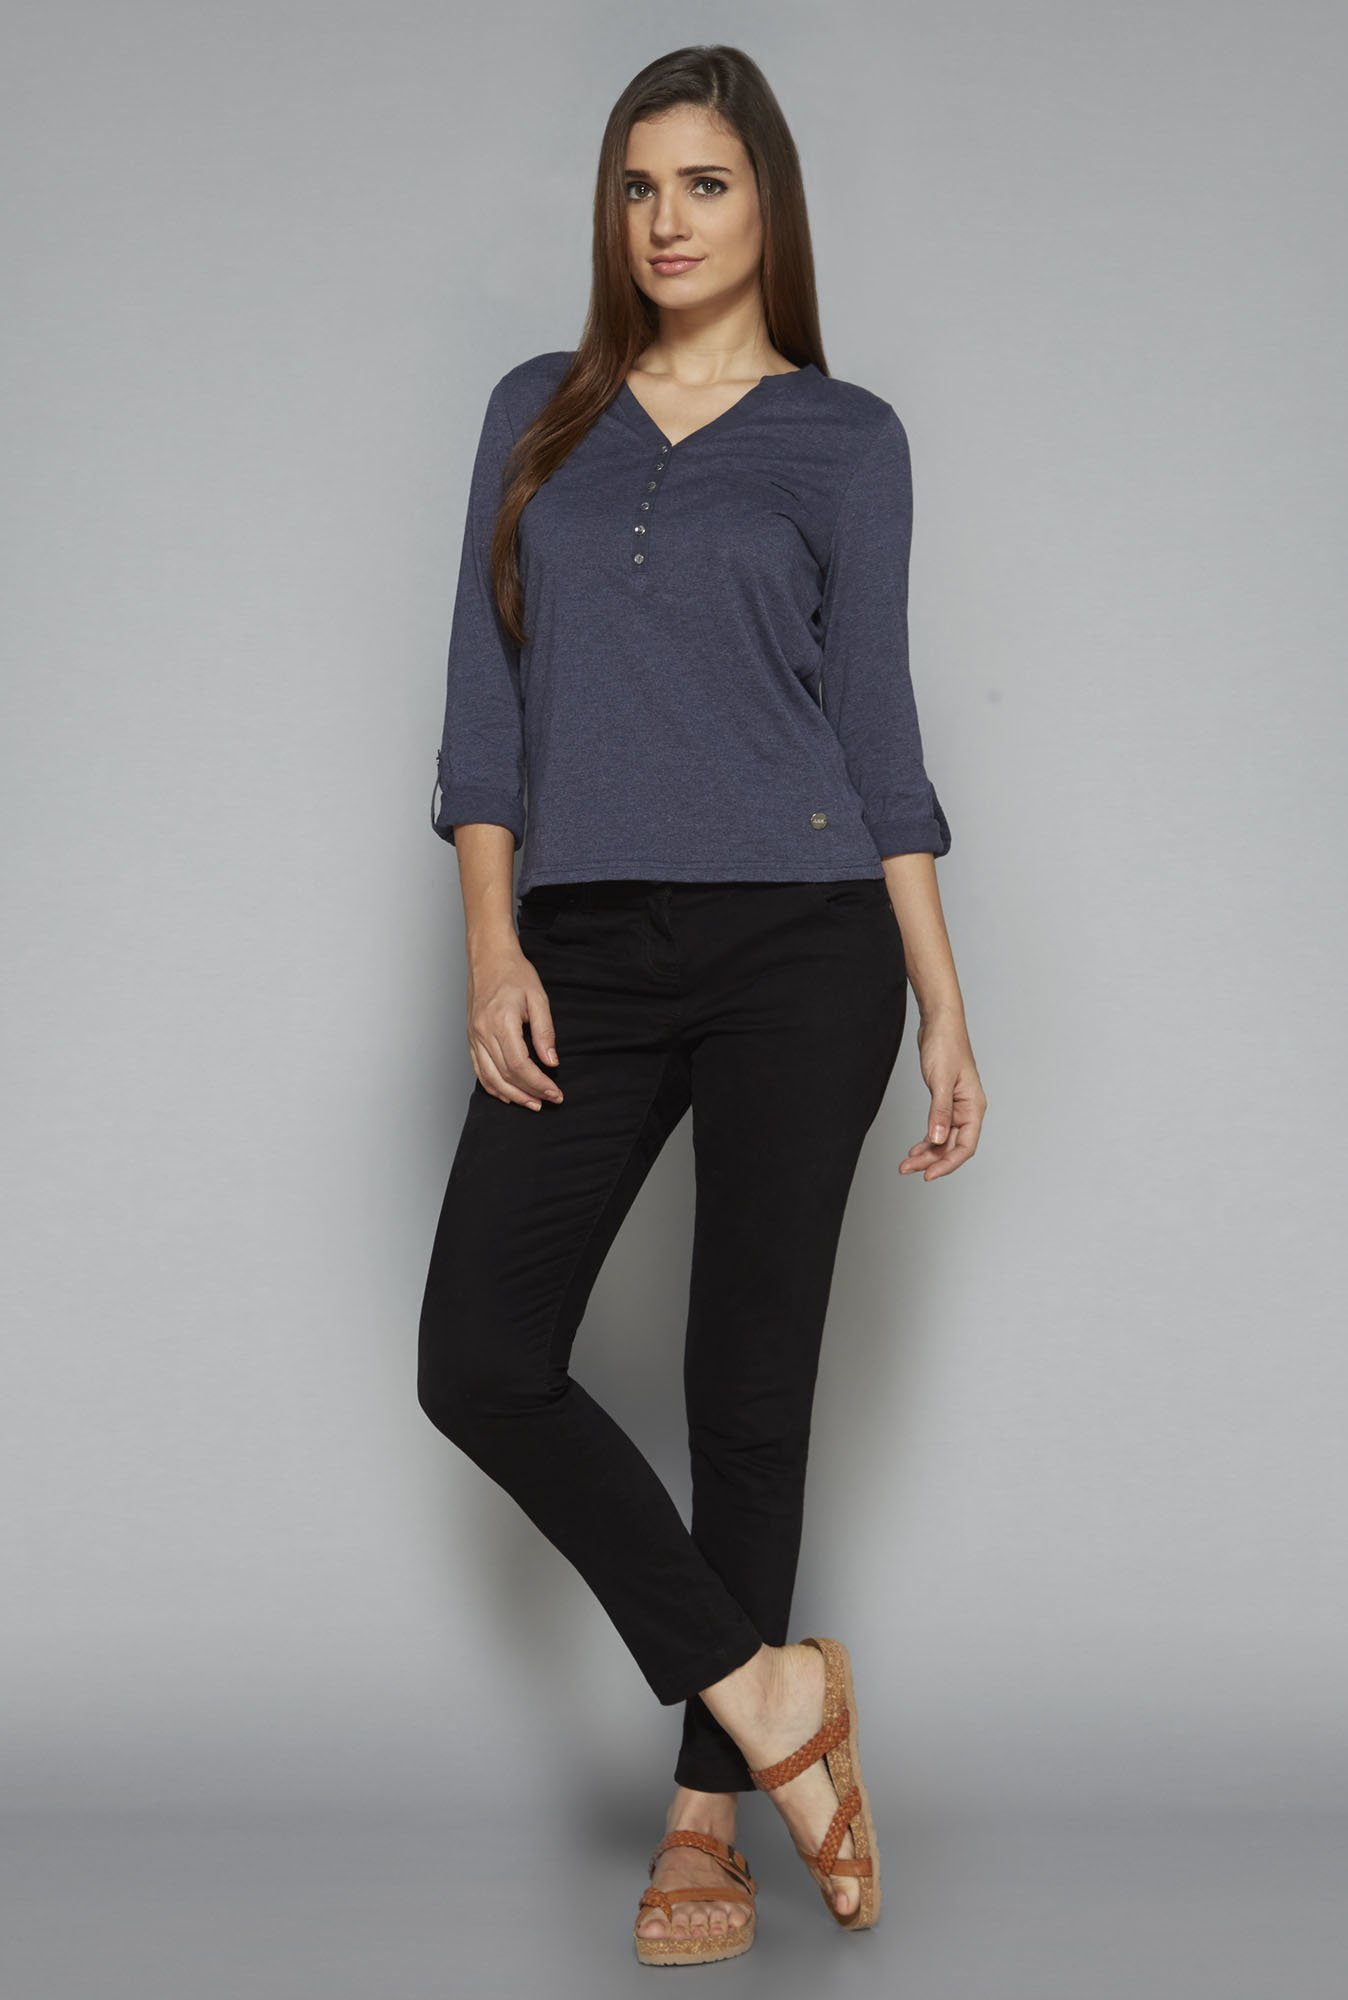 LOV by Westside Indigo Talia Top